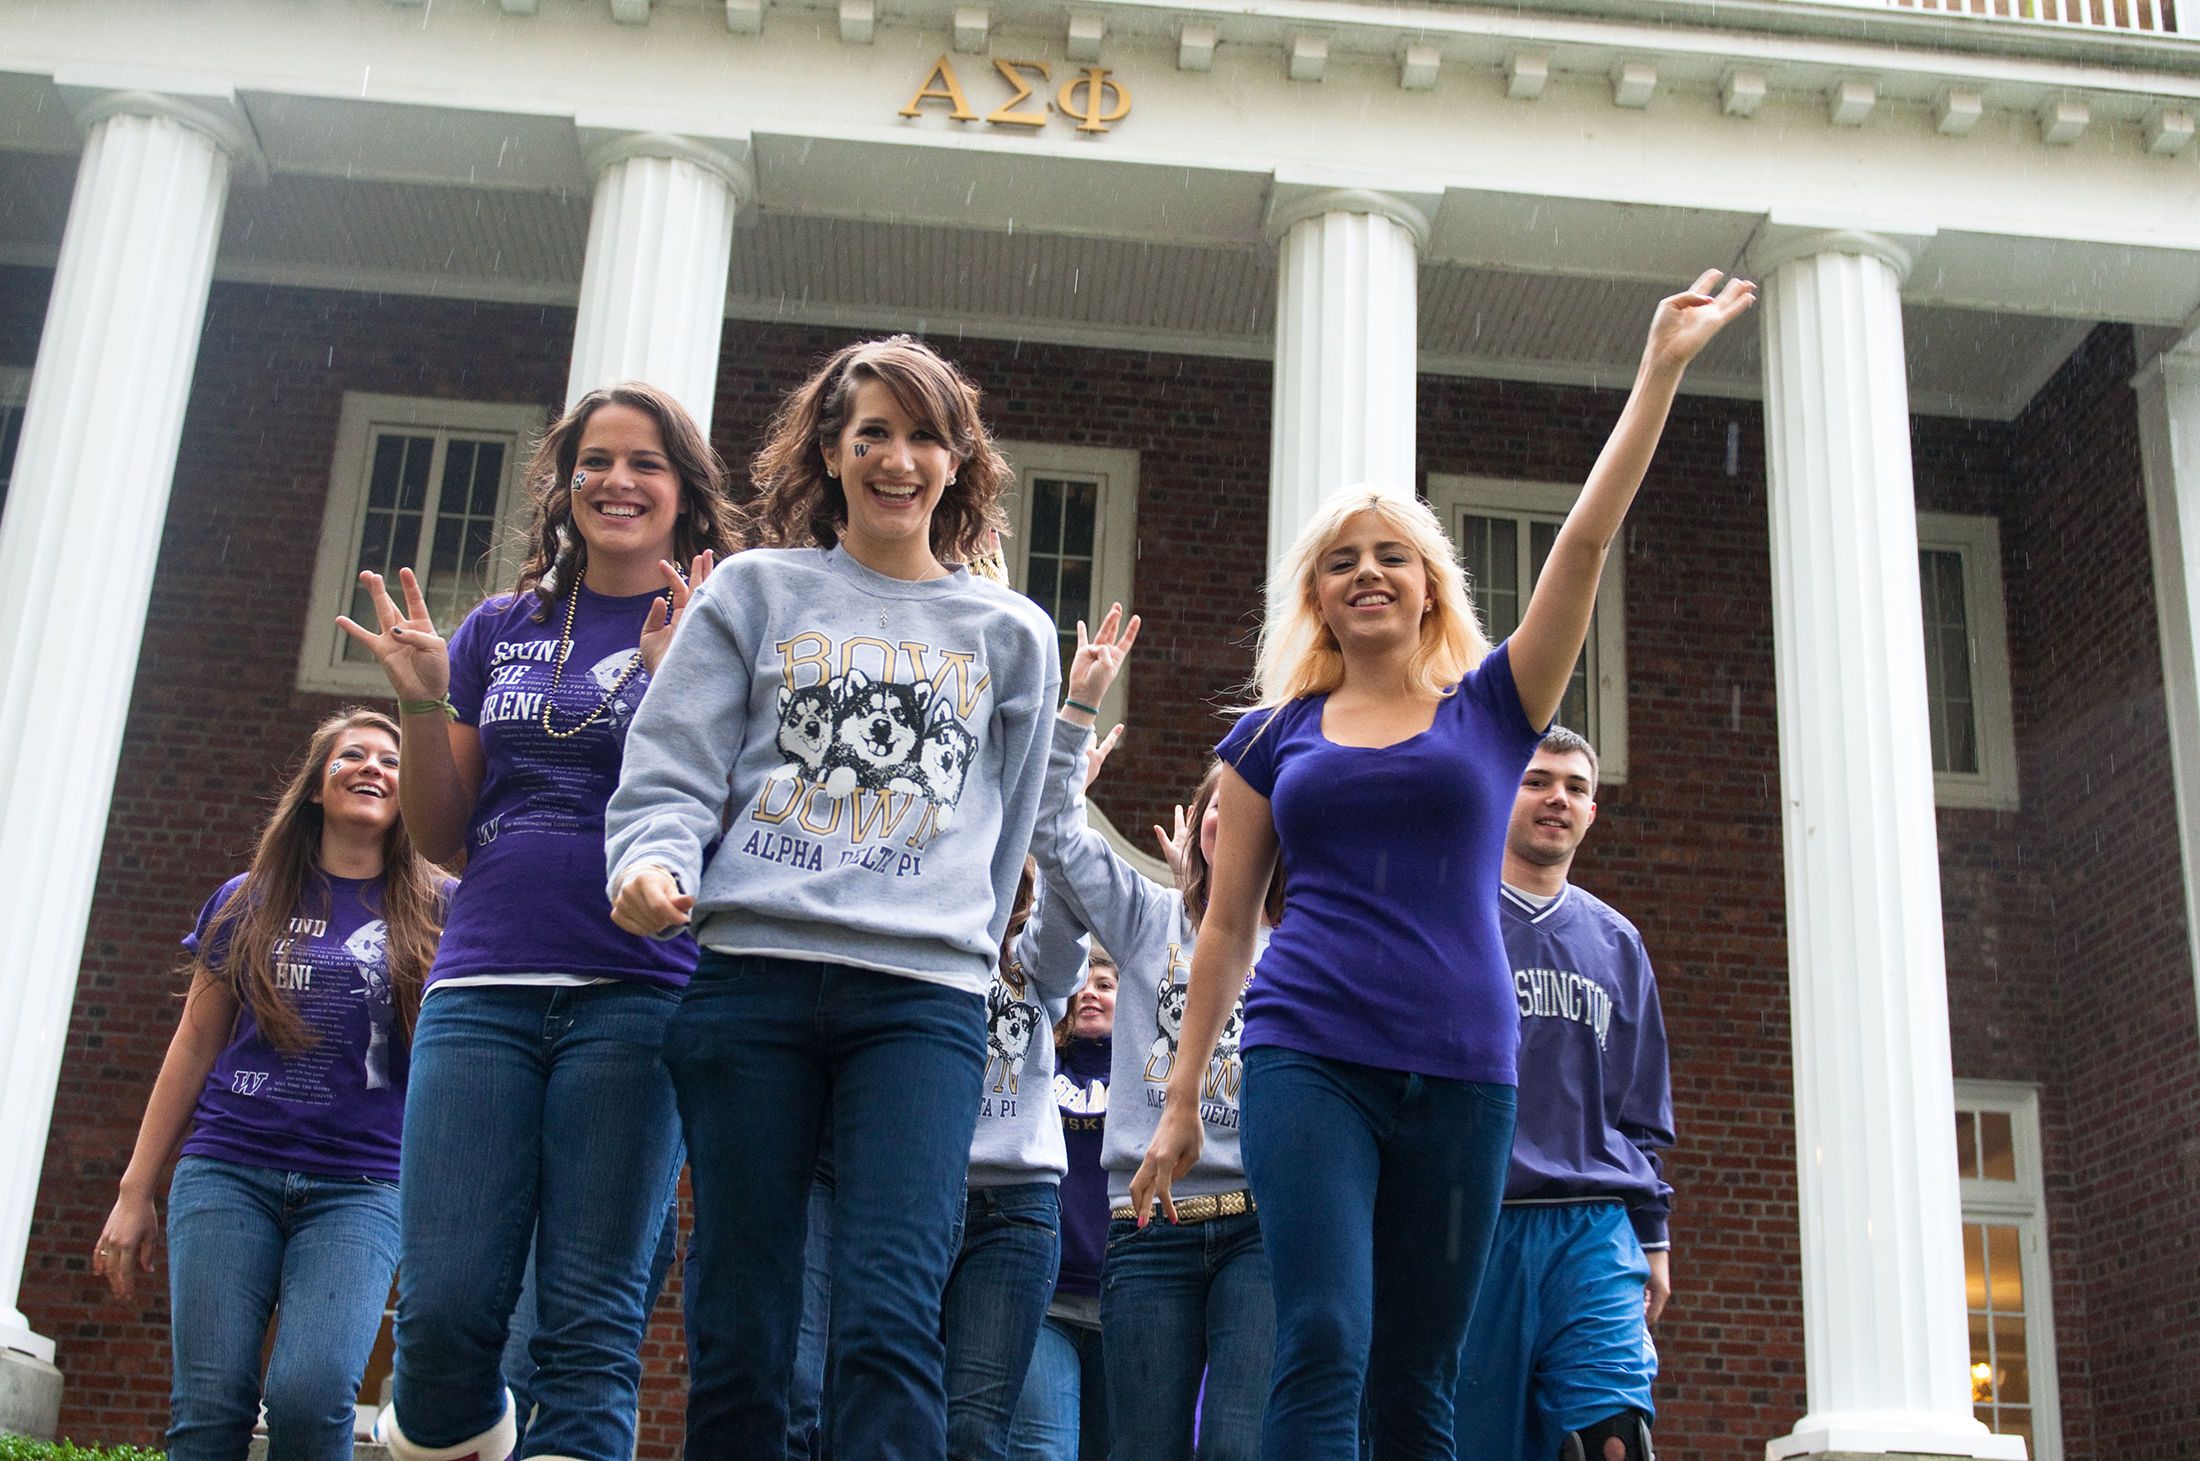 GREEK LIFE, About 4,400 UW students are part of our 65 fraternities and sororities.